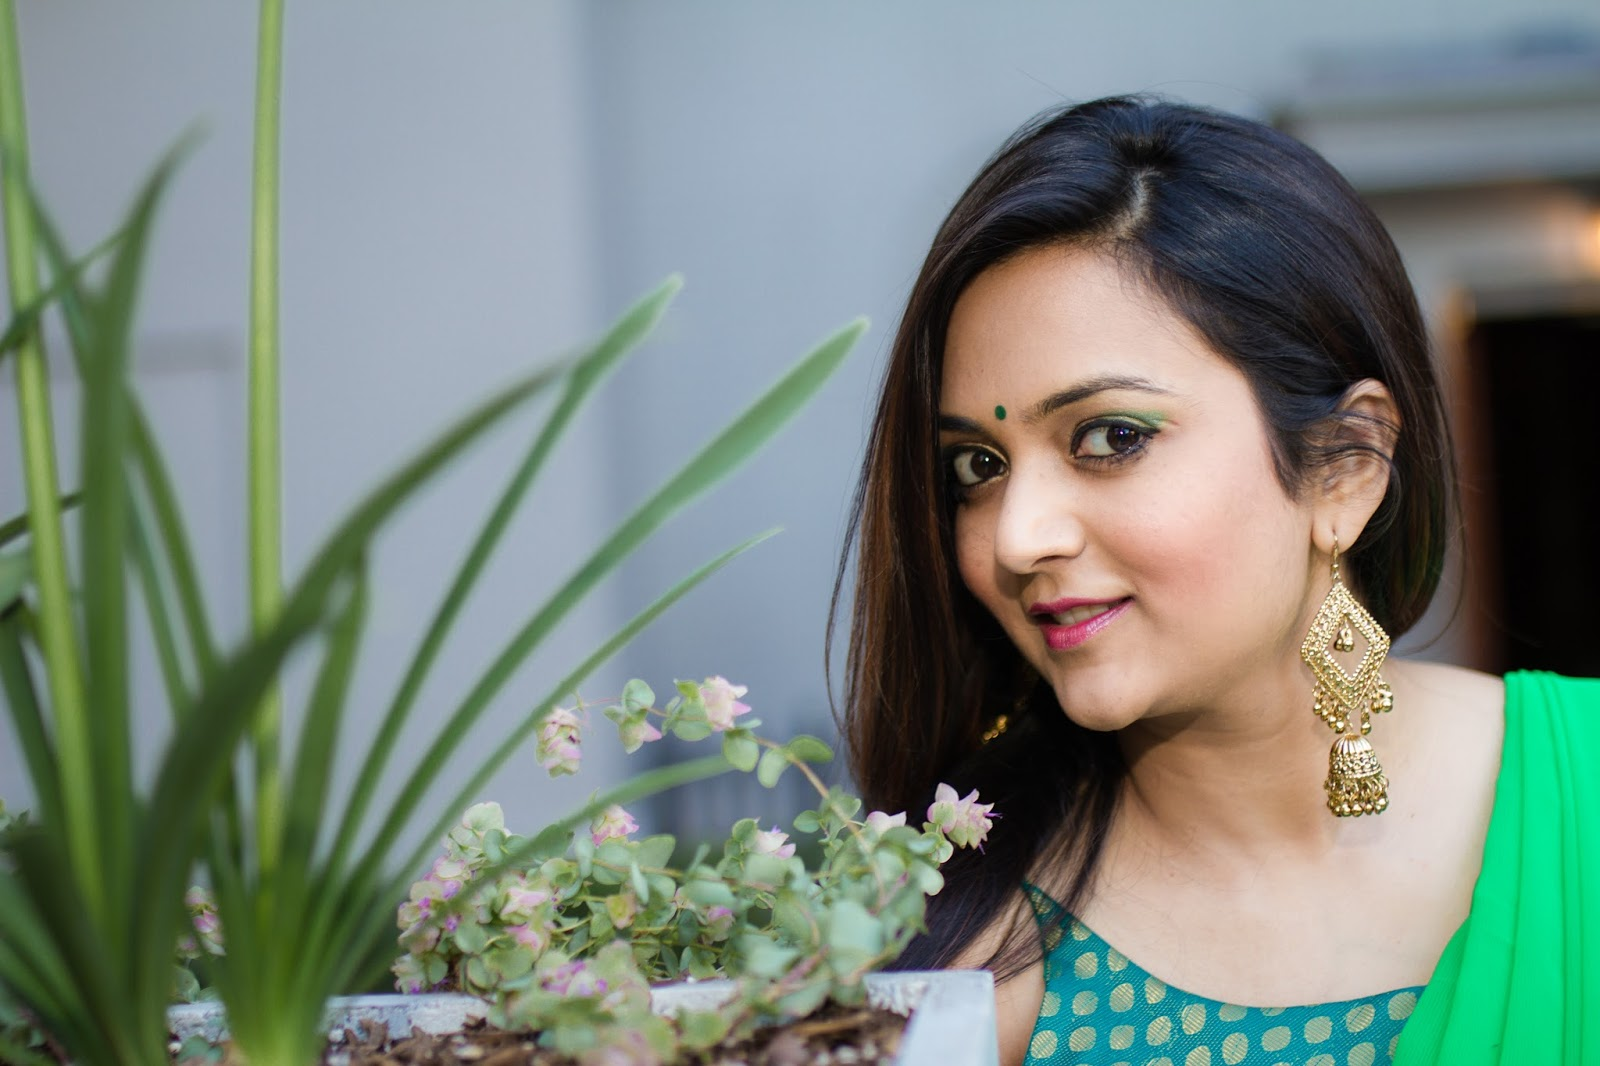 Ananya, ananya tales, south asian blogger, saree fashion, green sari, style blogger, seattle blogger